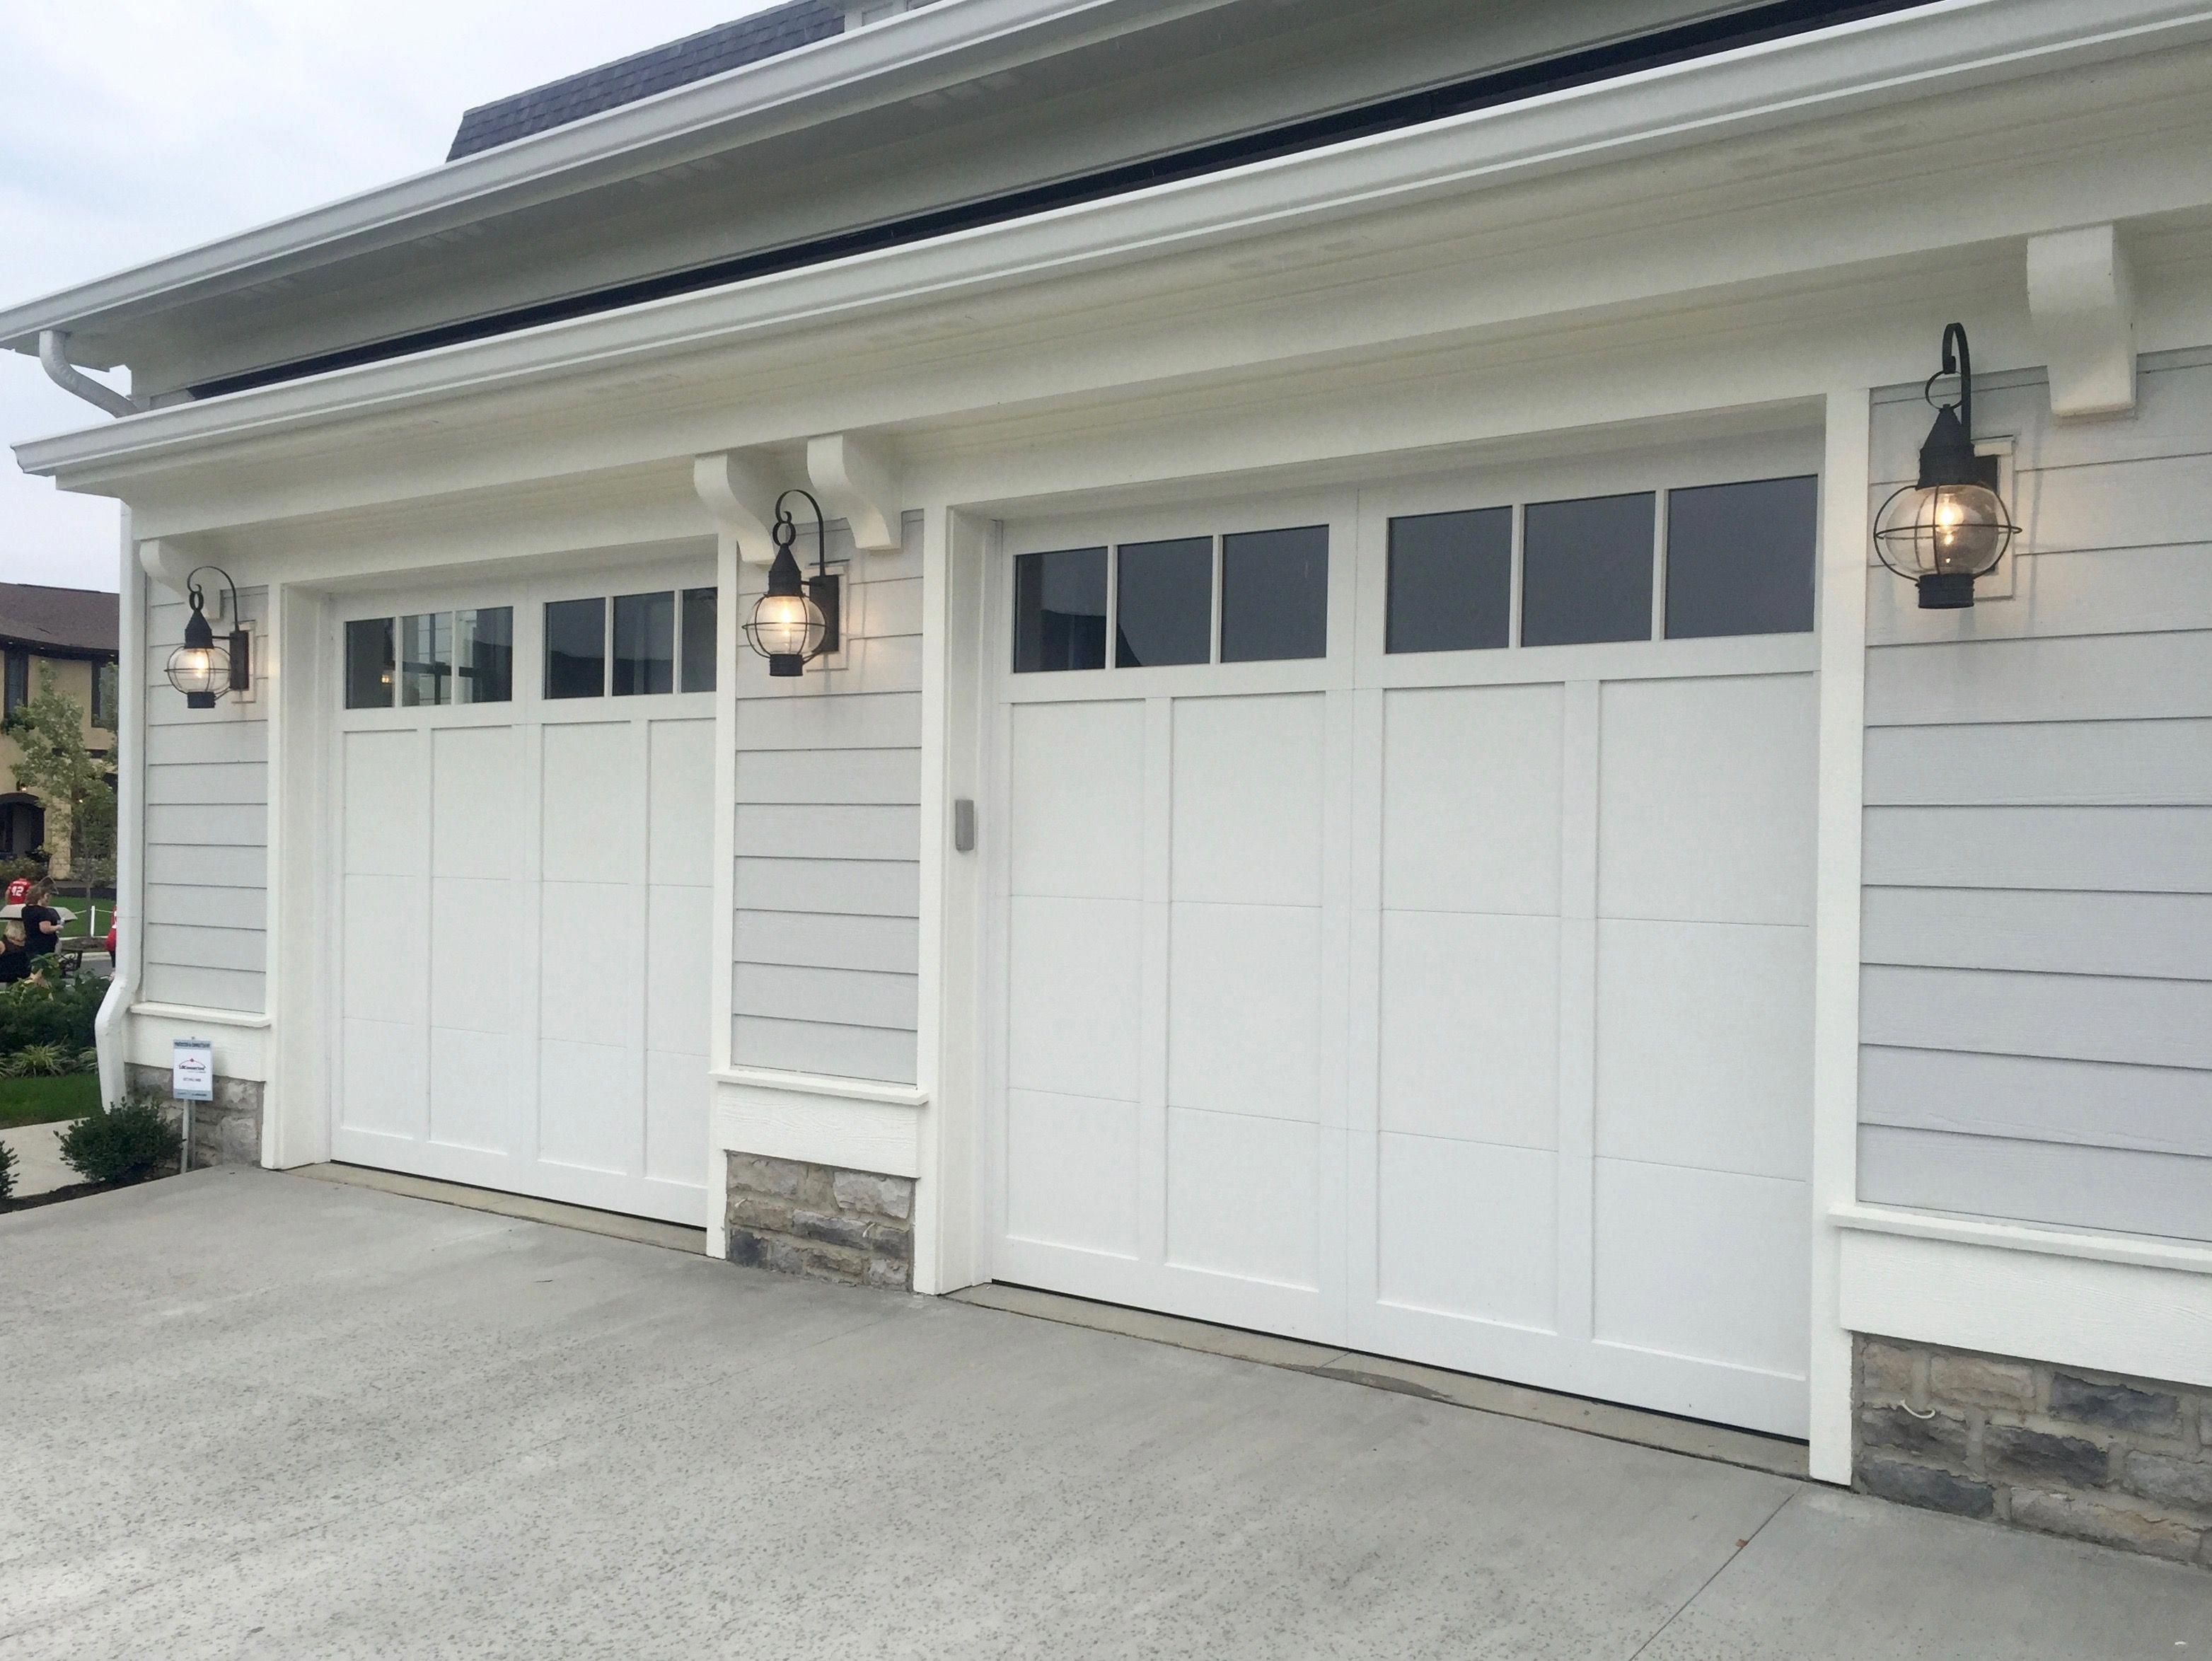 2 Car Garage Door Single Door Not Two Single Panels Like Other Pic Garageupdates Garage Doors Single Garage Door Garage Door Types